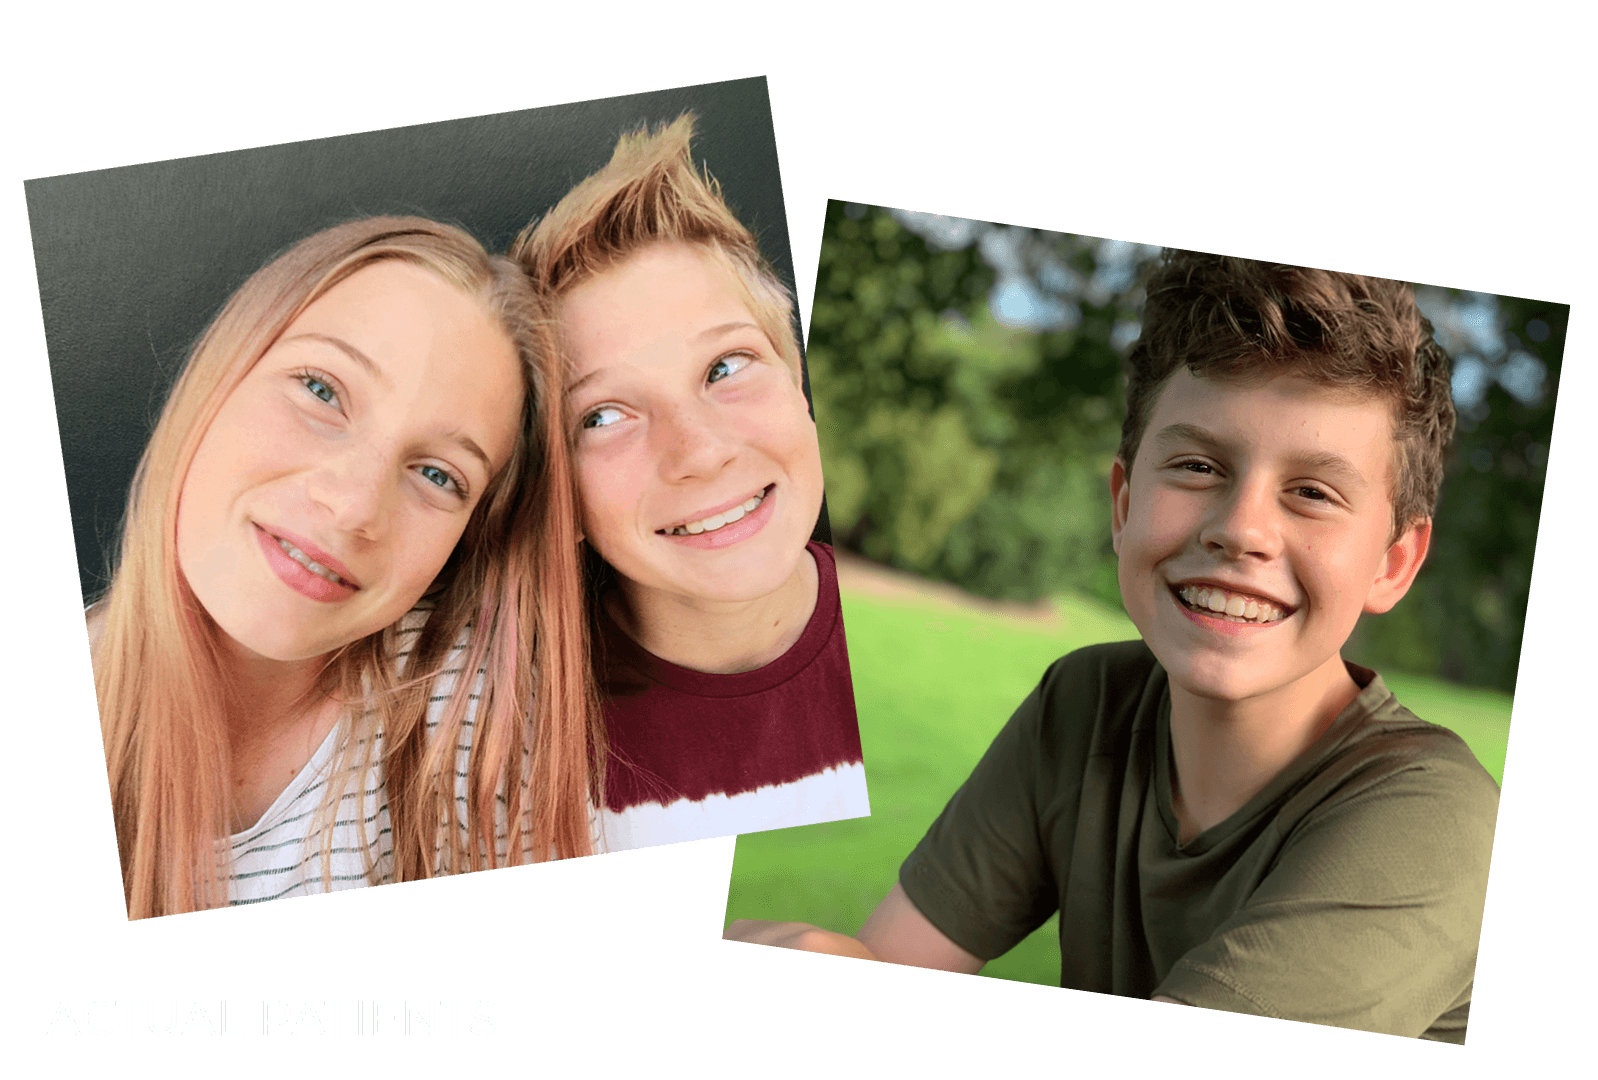 Images of young patients who have received dental services from Clear Smiles Orthodontics